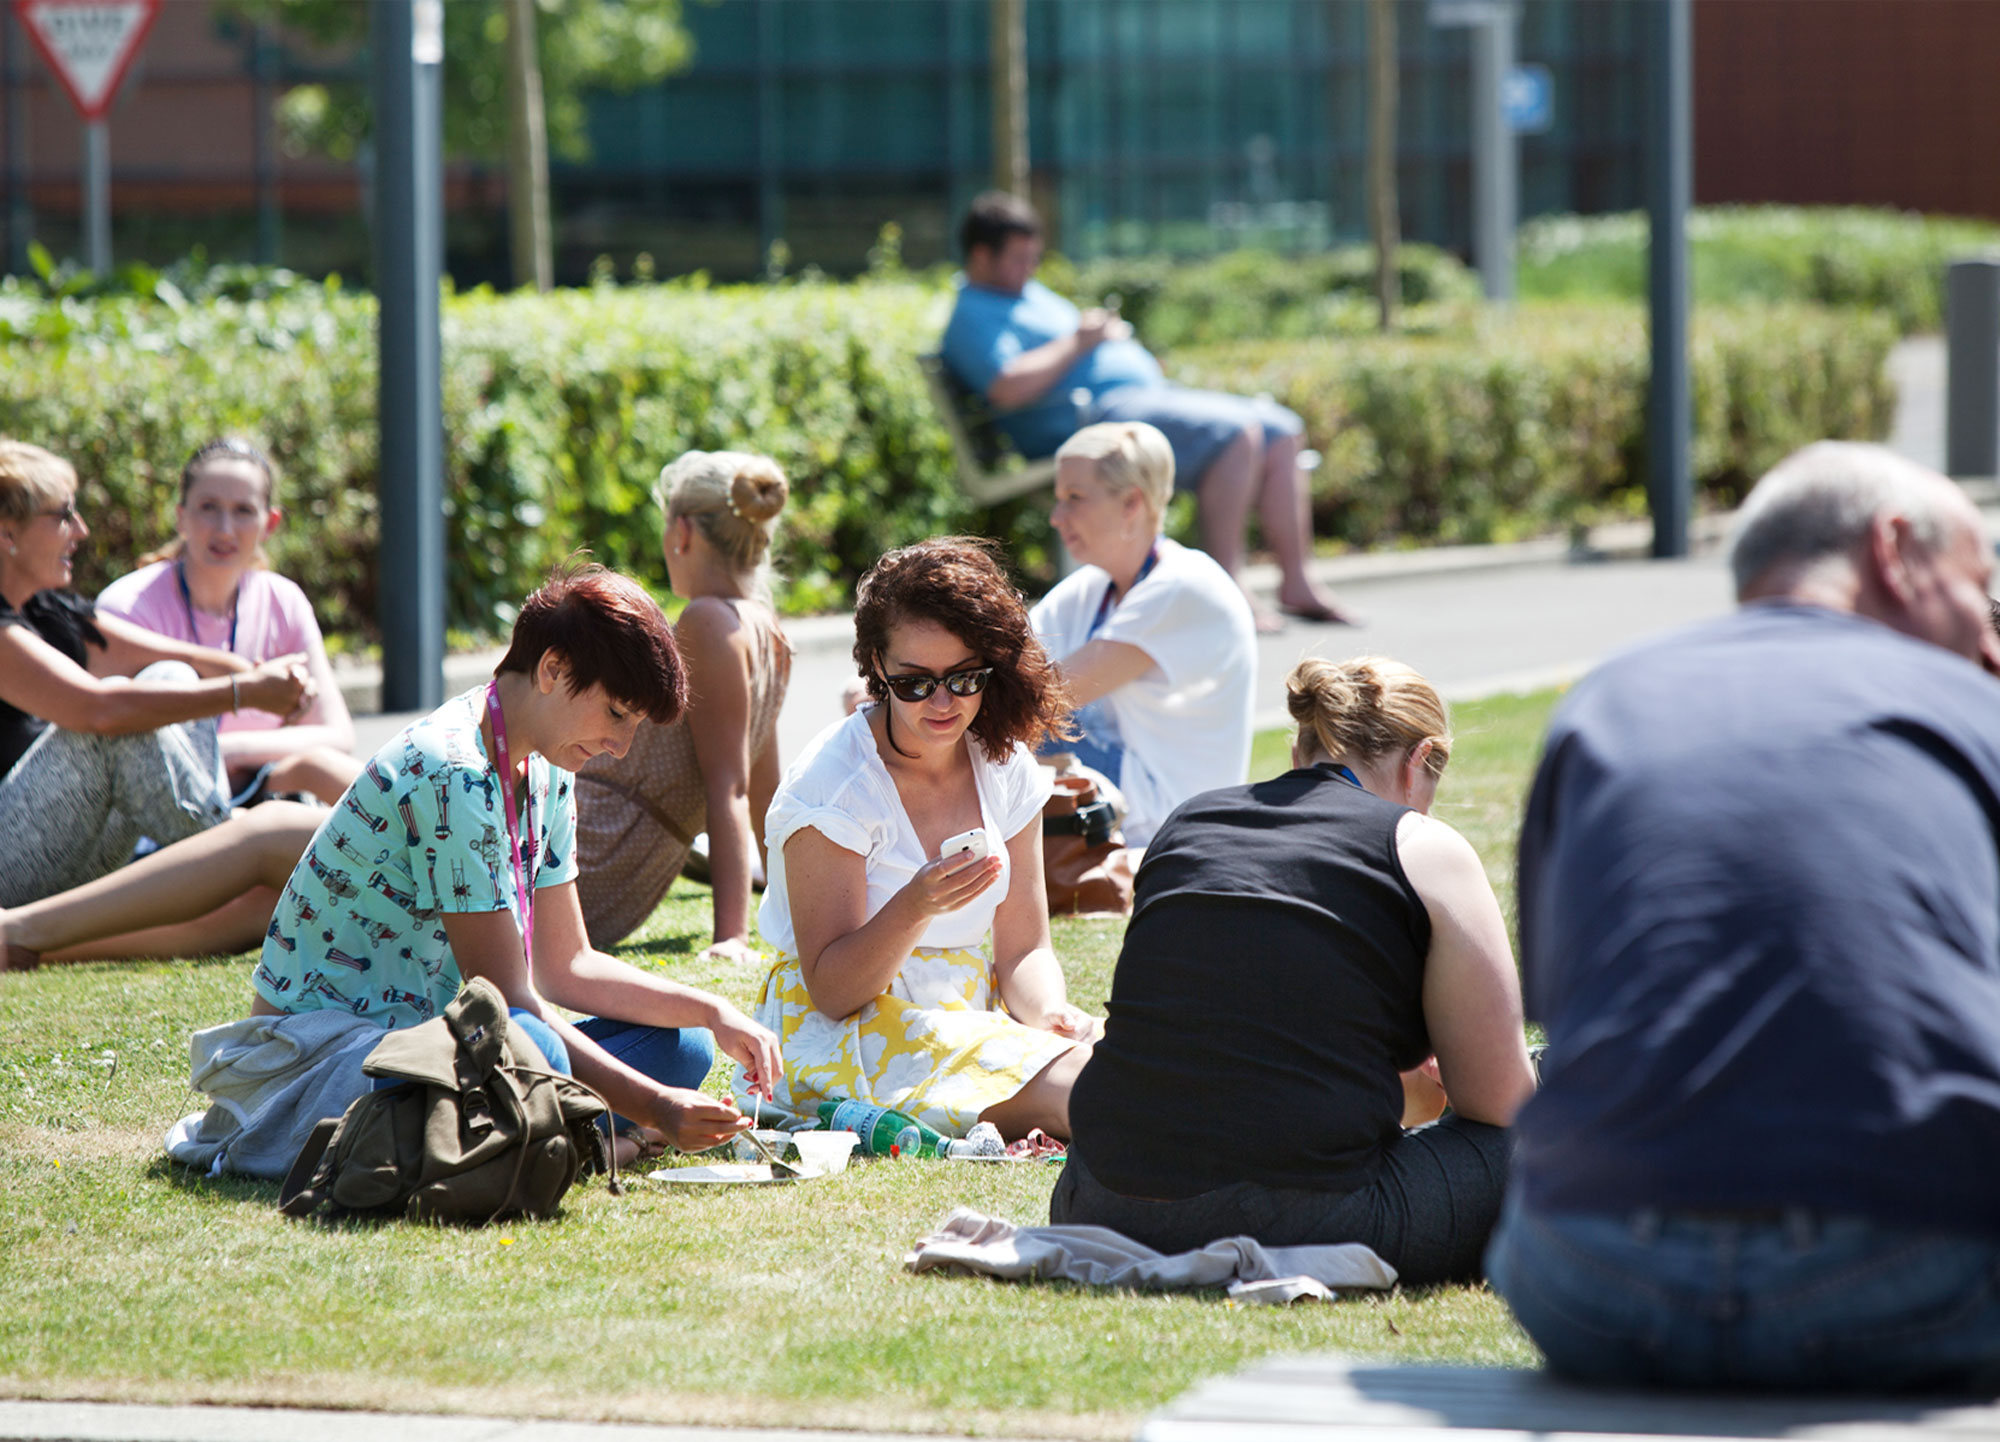 Supporting the mental health of our Quorum Park community